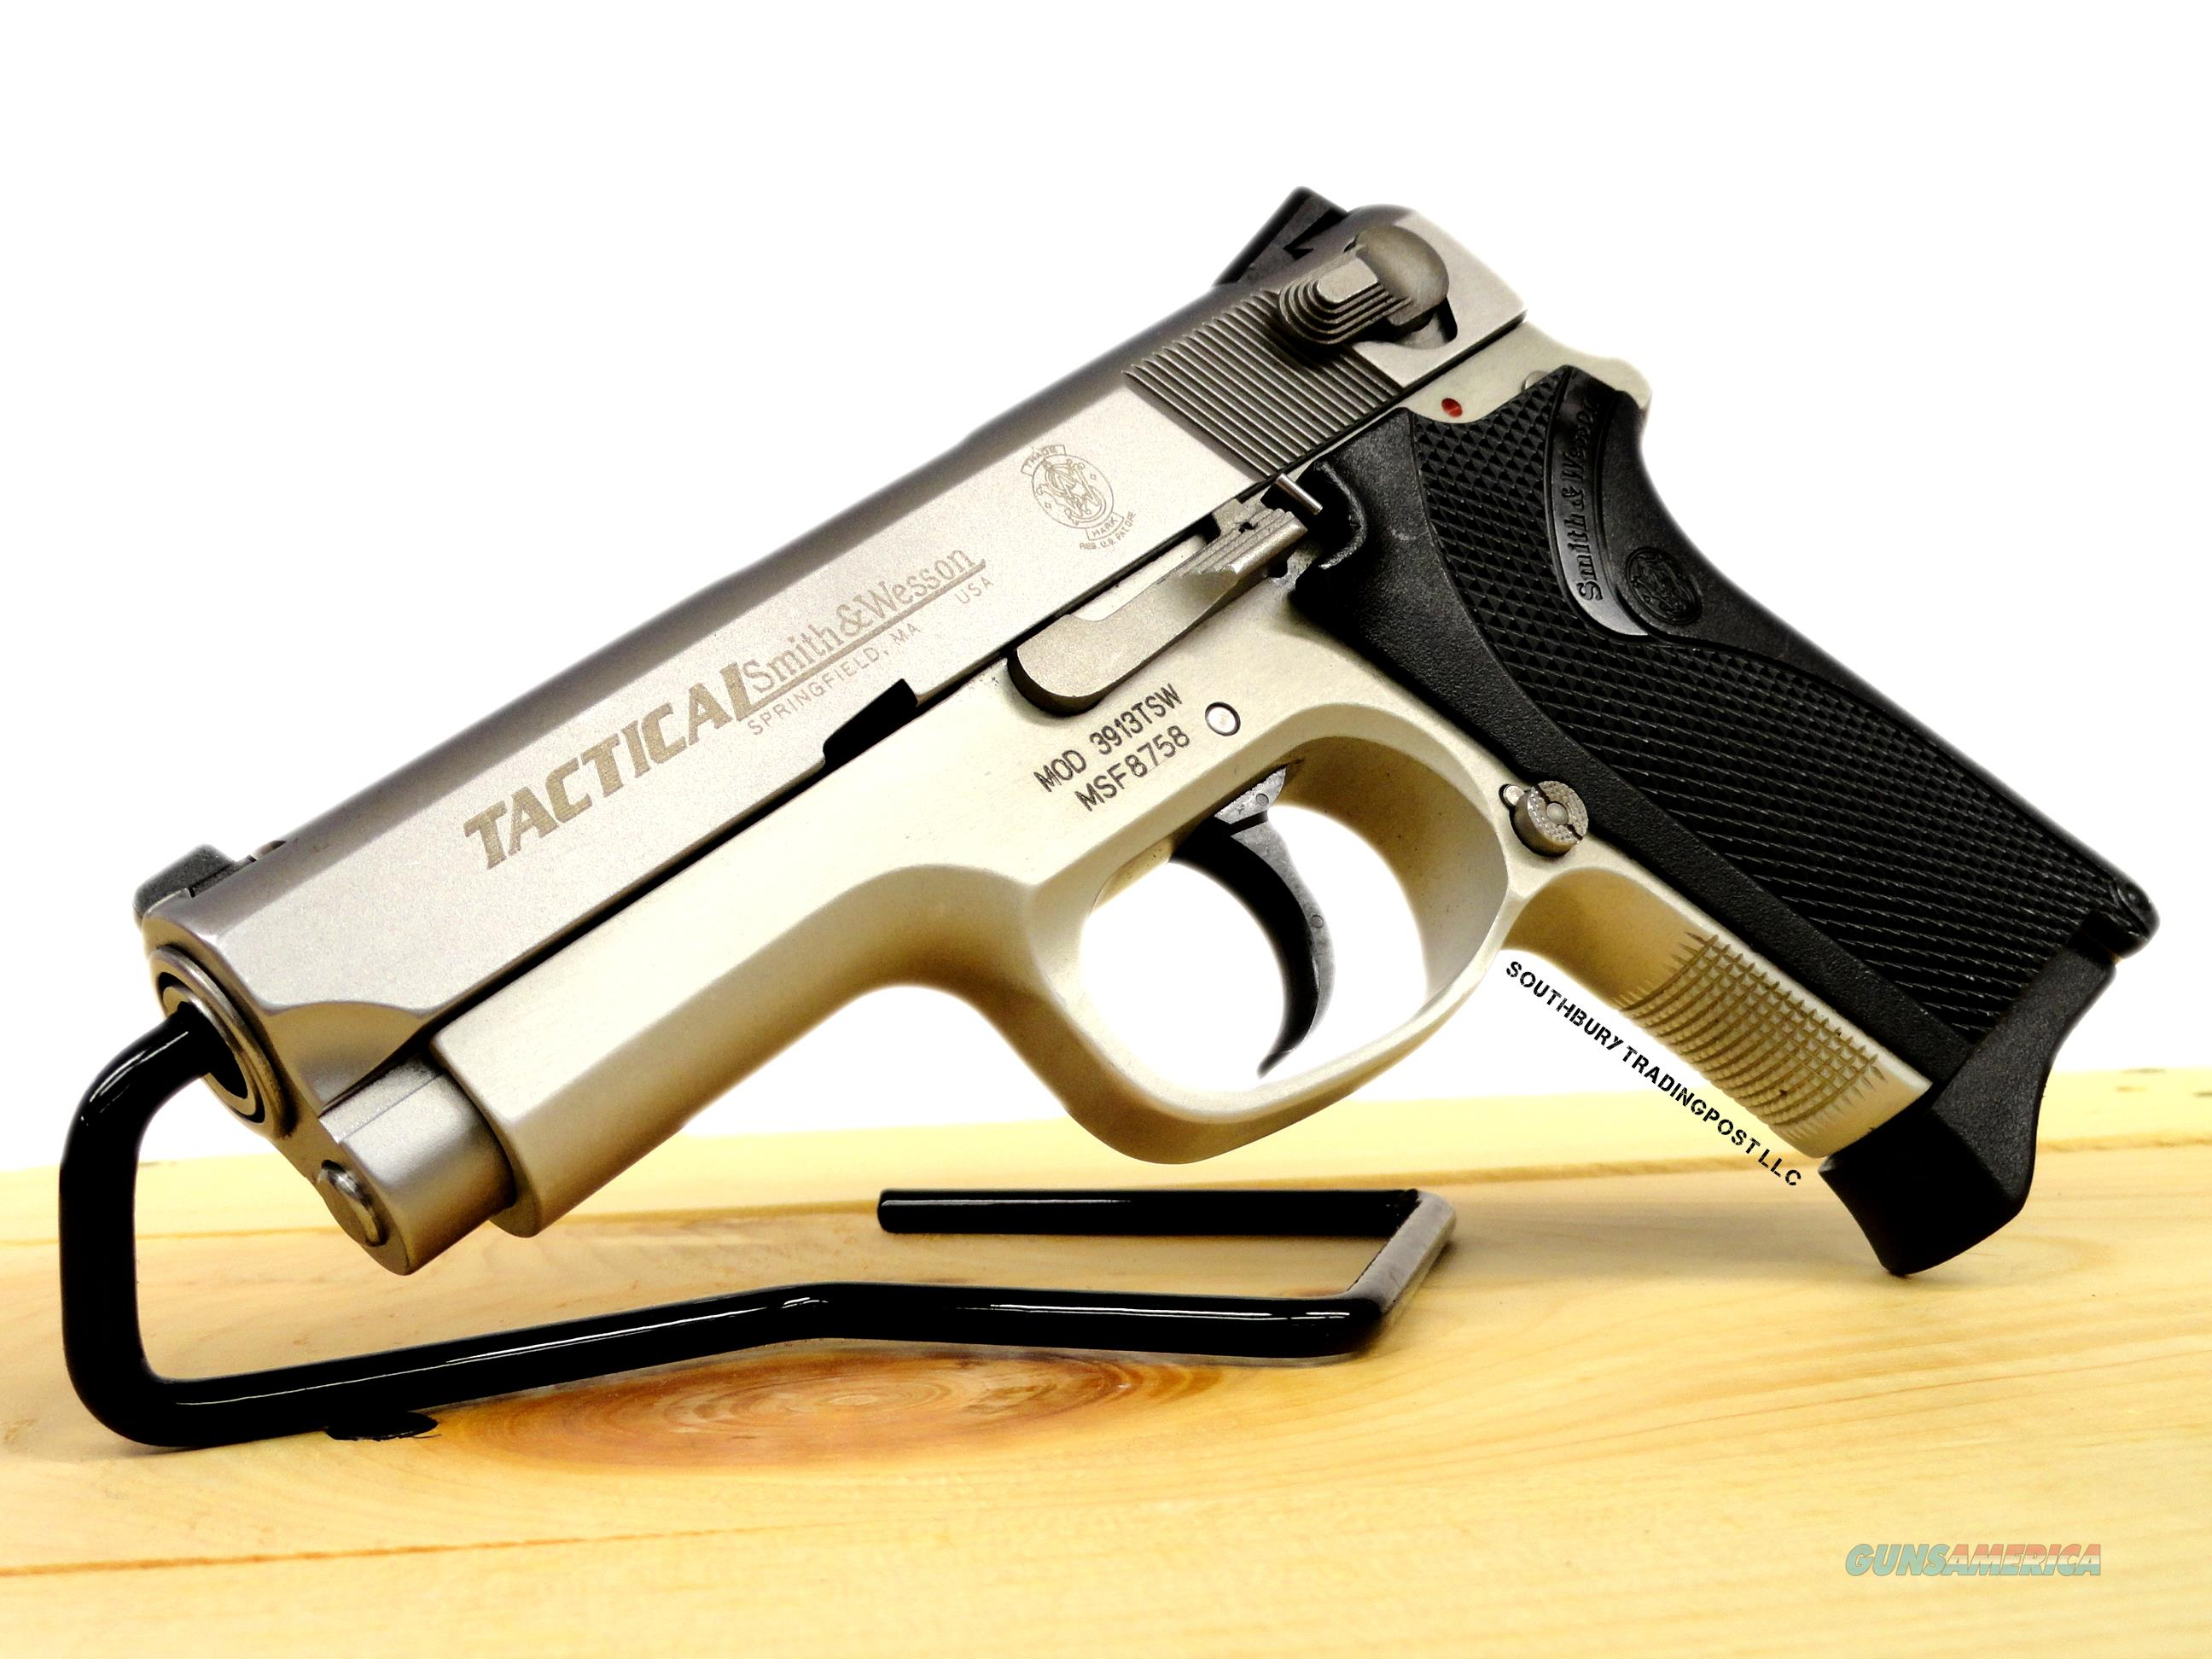 Smith & Wesson 3919TS 9MM + Magazines & Holster  Guns > Pistols > Smith & Wesson Pistols - Autos > Alloy Frame